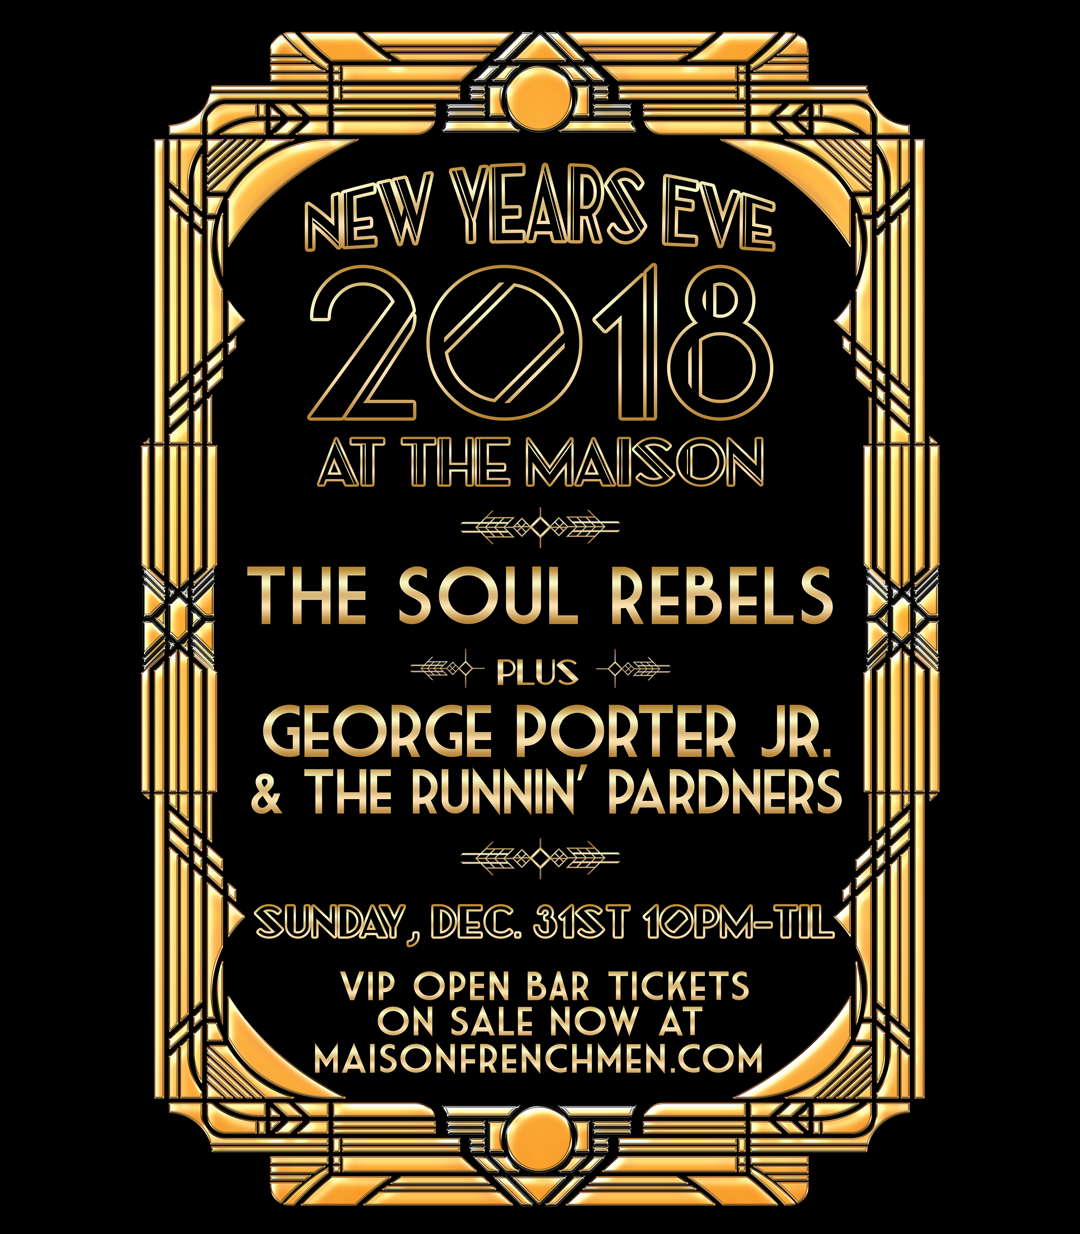 New Years Eve with The Soul Rebels and George Porter Jr at The Maison